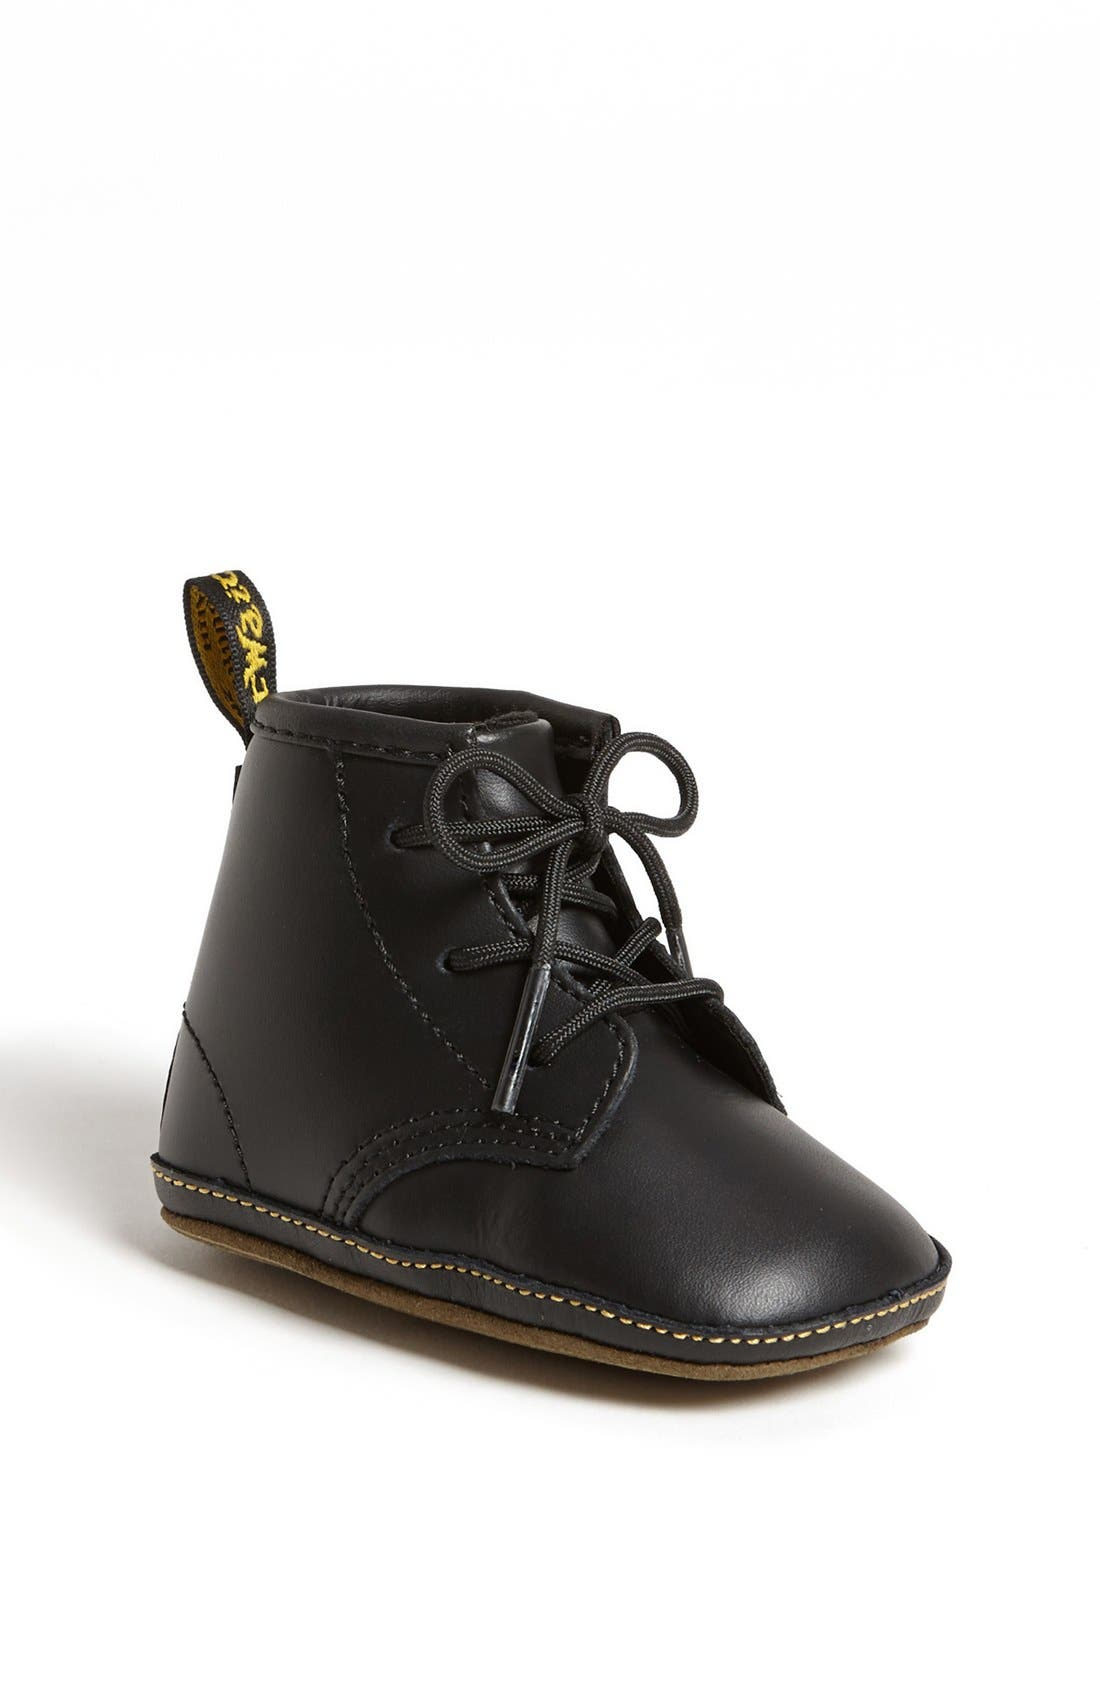 Girls' Boots Shoes | Nordstrom